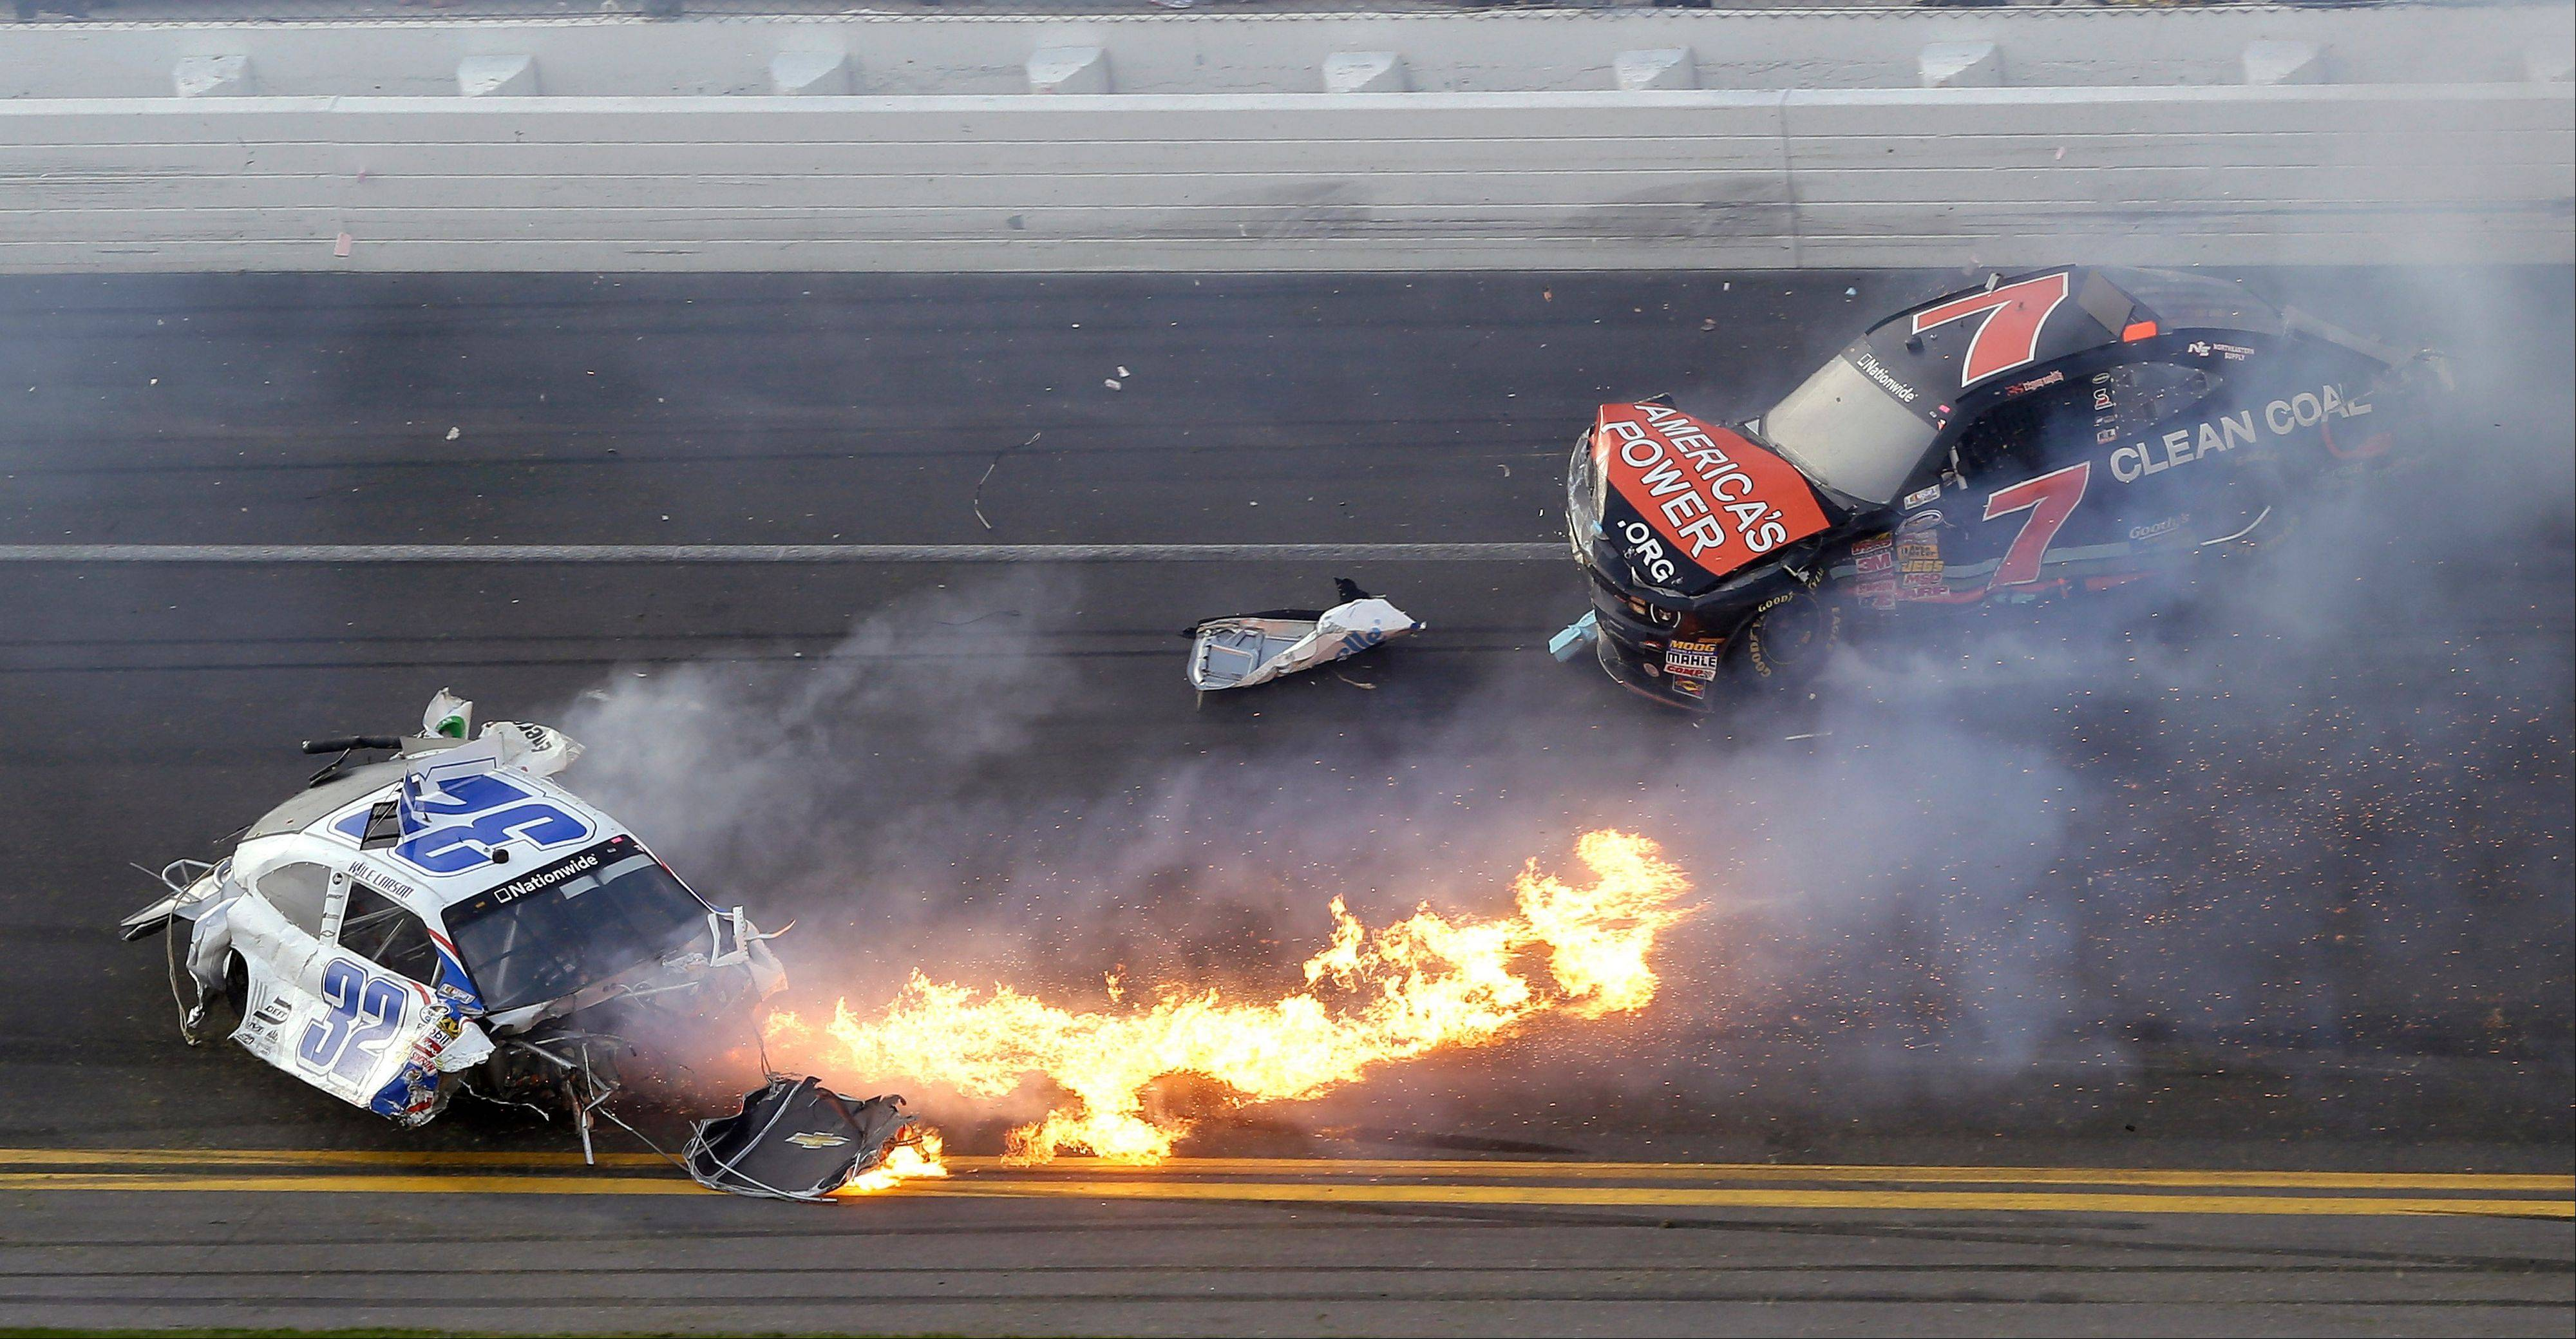 Kyle Larson, left, slides to a stop near Regan Smith (7) after a wreck at the conclusion of the NASCAR Nationwide Series auto race Saturday, Feb. 23, 2013, at Daytona International Speedway in Daytona Beach, Fla.